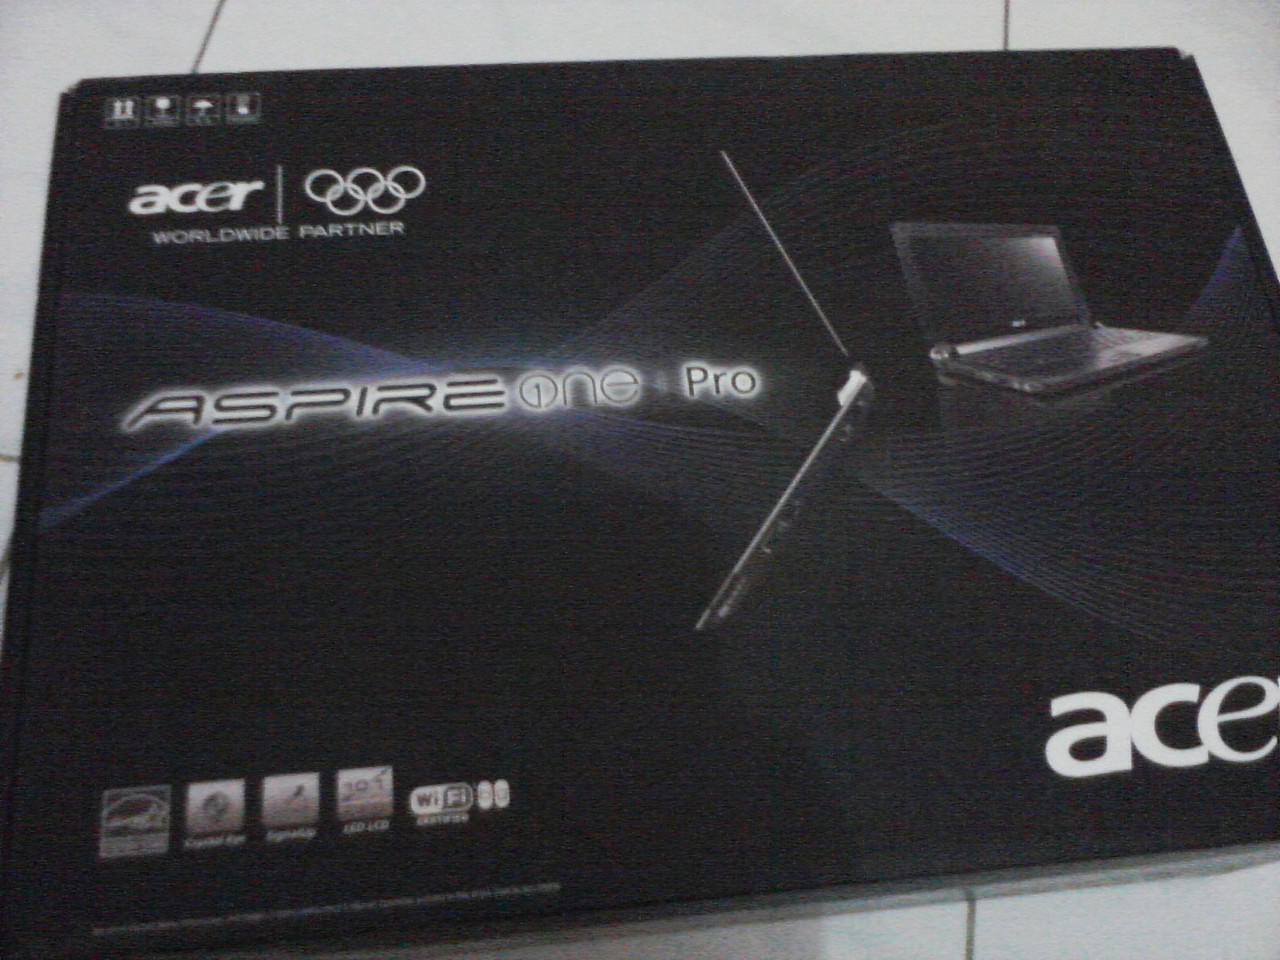 (WTS) Acer Aspire One Pro P531h DIJUAL